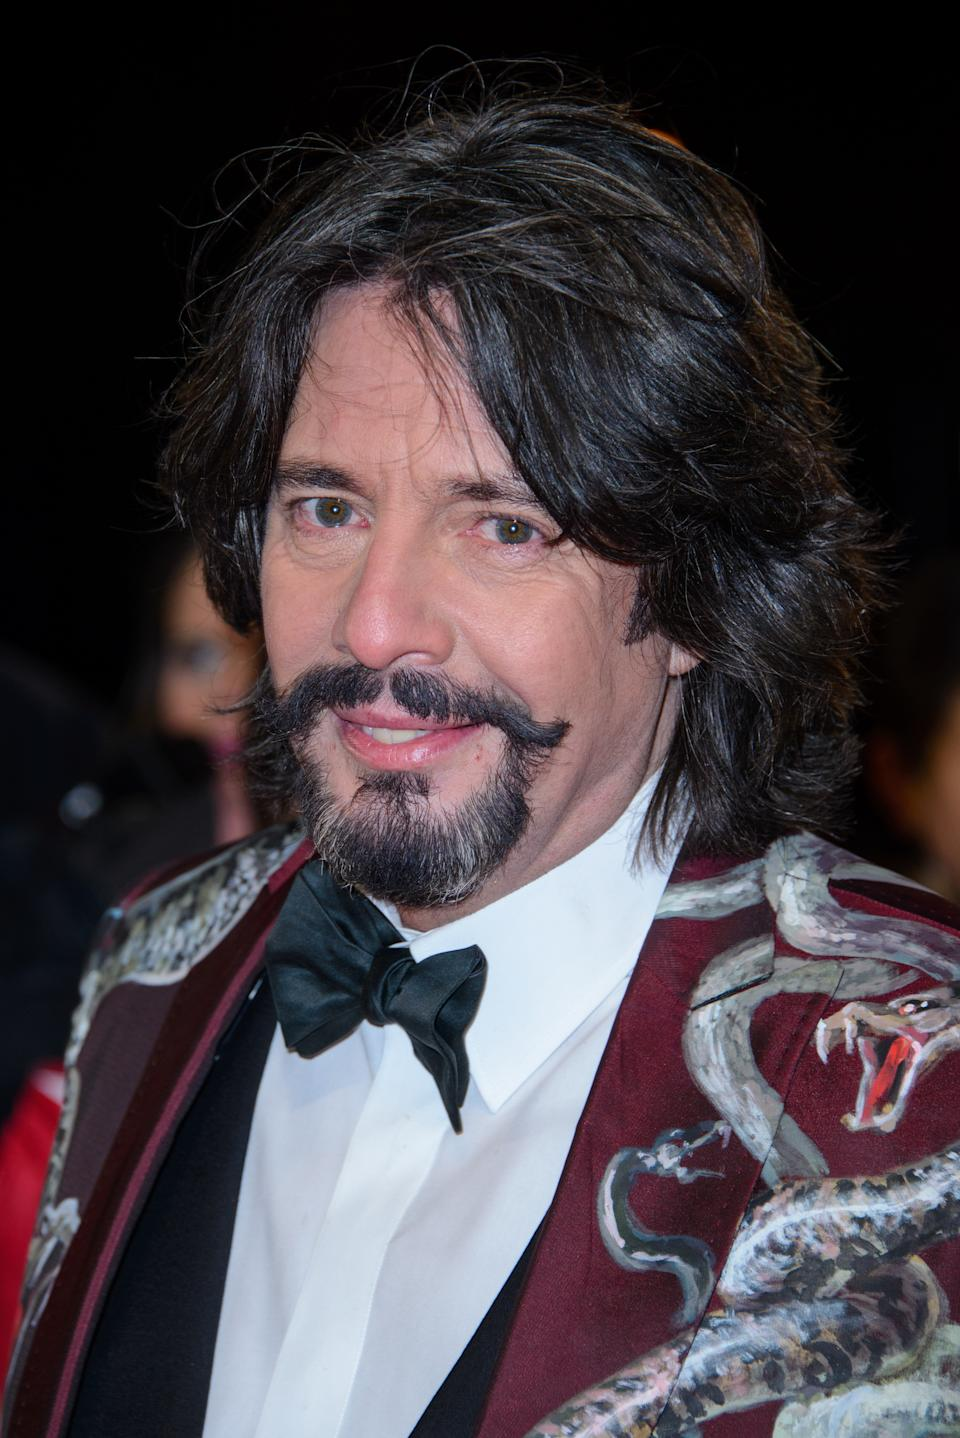 LONDON, ENGLAND - JANUARY 25: Laurence Llewelyn-Bowen attends the National Television Awards on January 25, 2017 in London, United Kingdom. (Photo by Joe Maher/Getty Images)